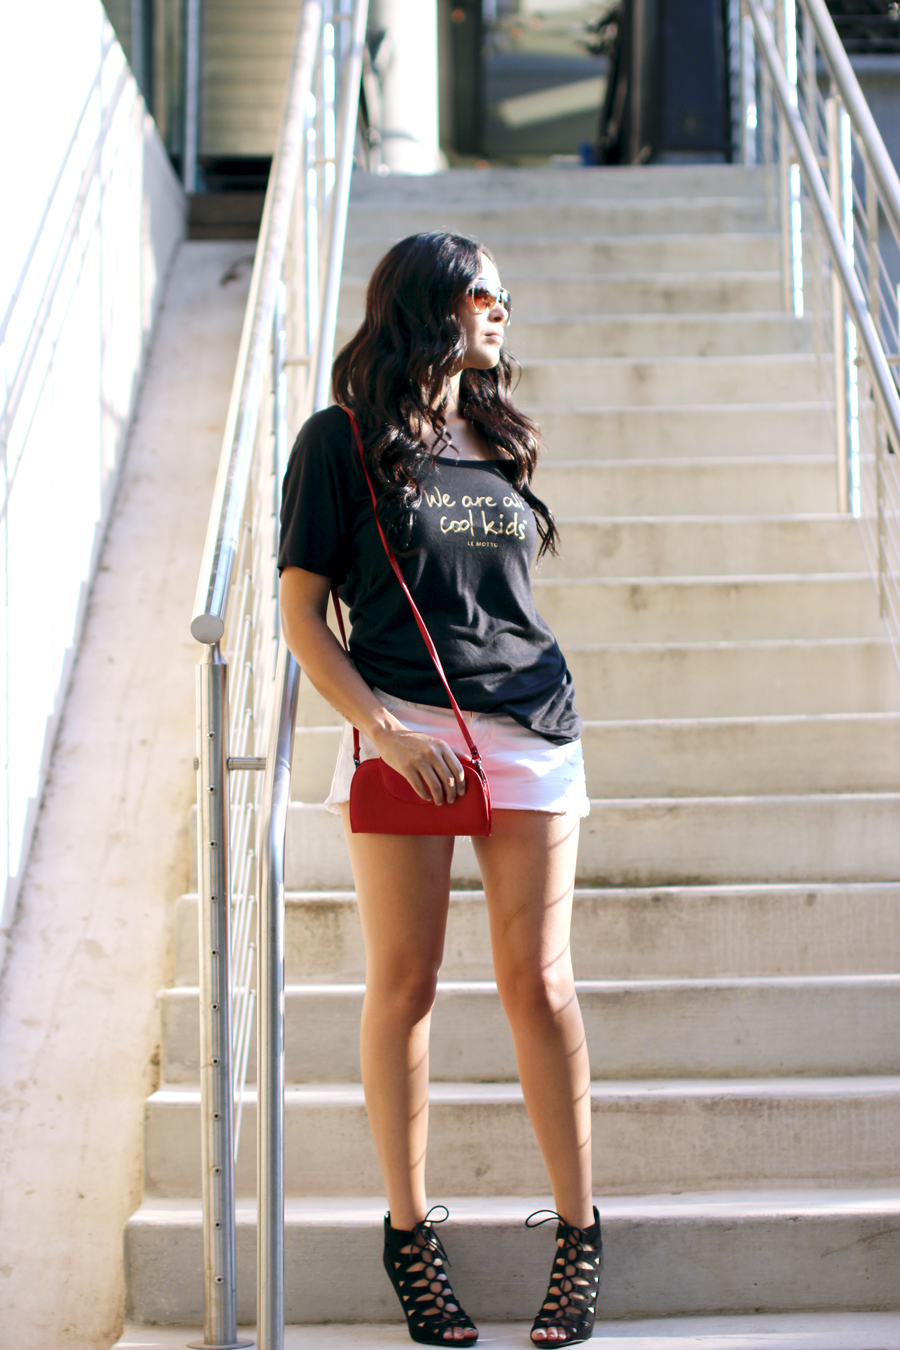 FIXIN-TO-THRILL-LE-MOTTO-ATX-AUSTIN-STYLE-BLOG-SKINNY-SHORTS-SANDALS-SHIRTS-WORDS-EMPOWERMENT-SPONSORED-TRENDS-FW15-TRENDY-CHIC-GLAM-FASHION-TEXAS-BLACK-5